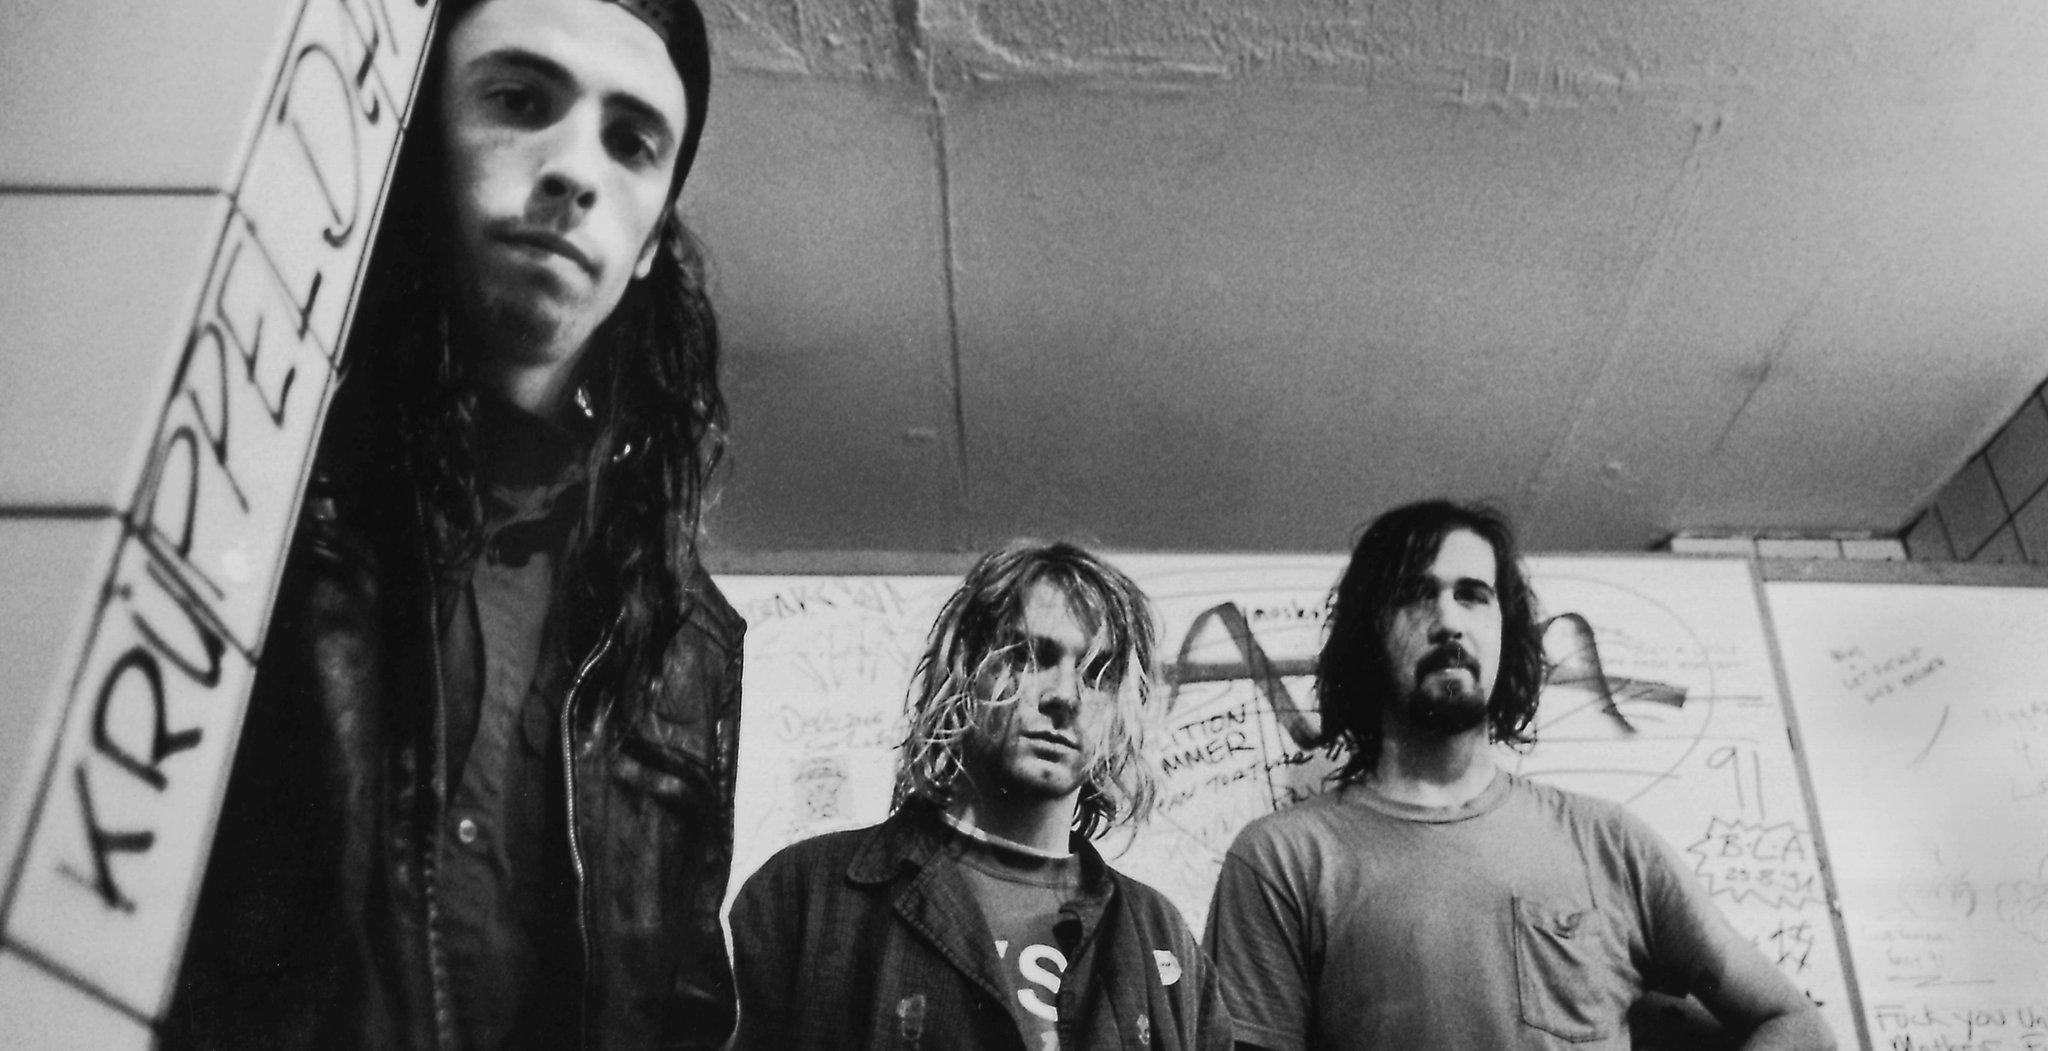 Nirvana's 'In Utero' turns 24 today. See why it is one of the best albums of the Nineties https://t.co/qUFJTaL8l3 https://t.co/ritd86cy2p